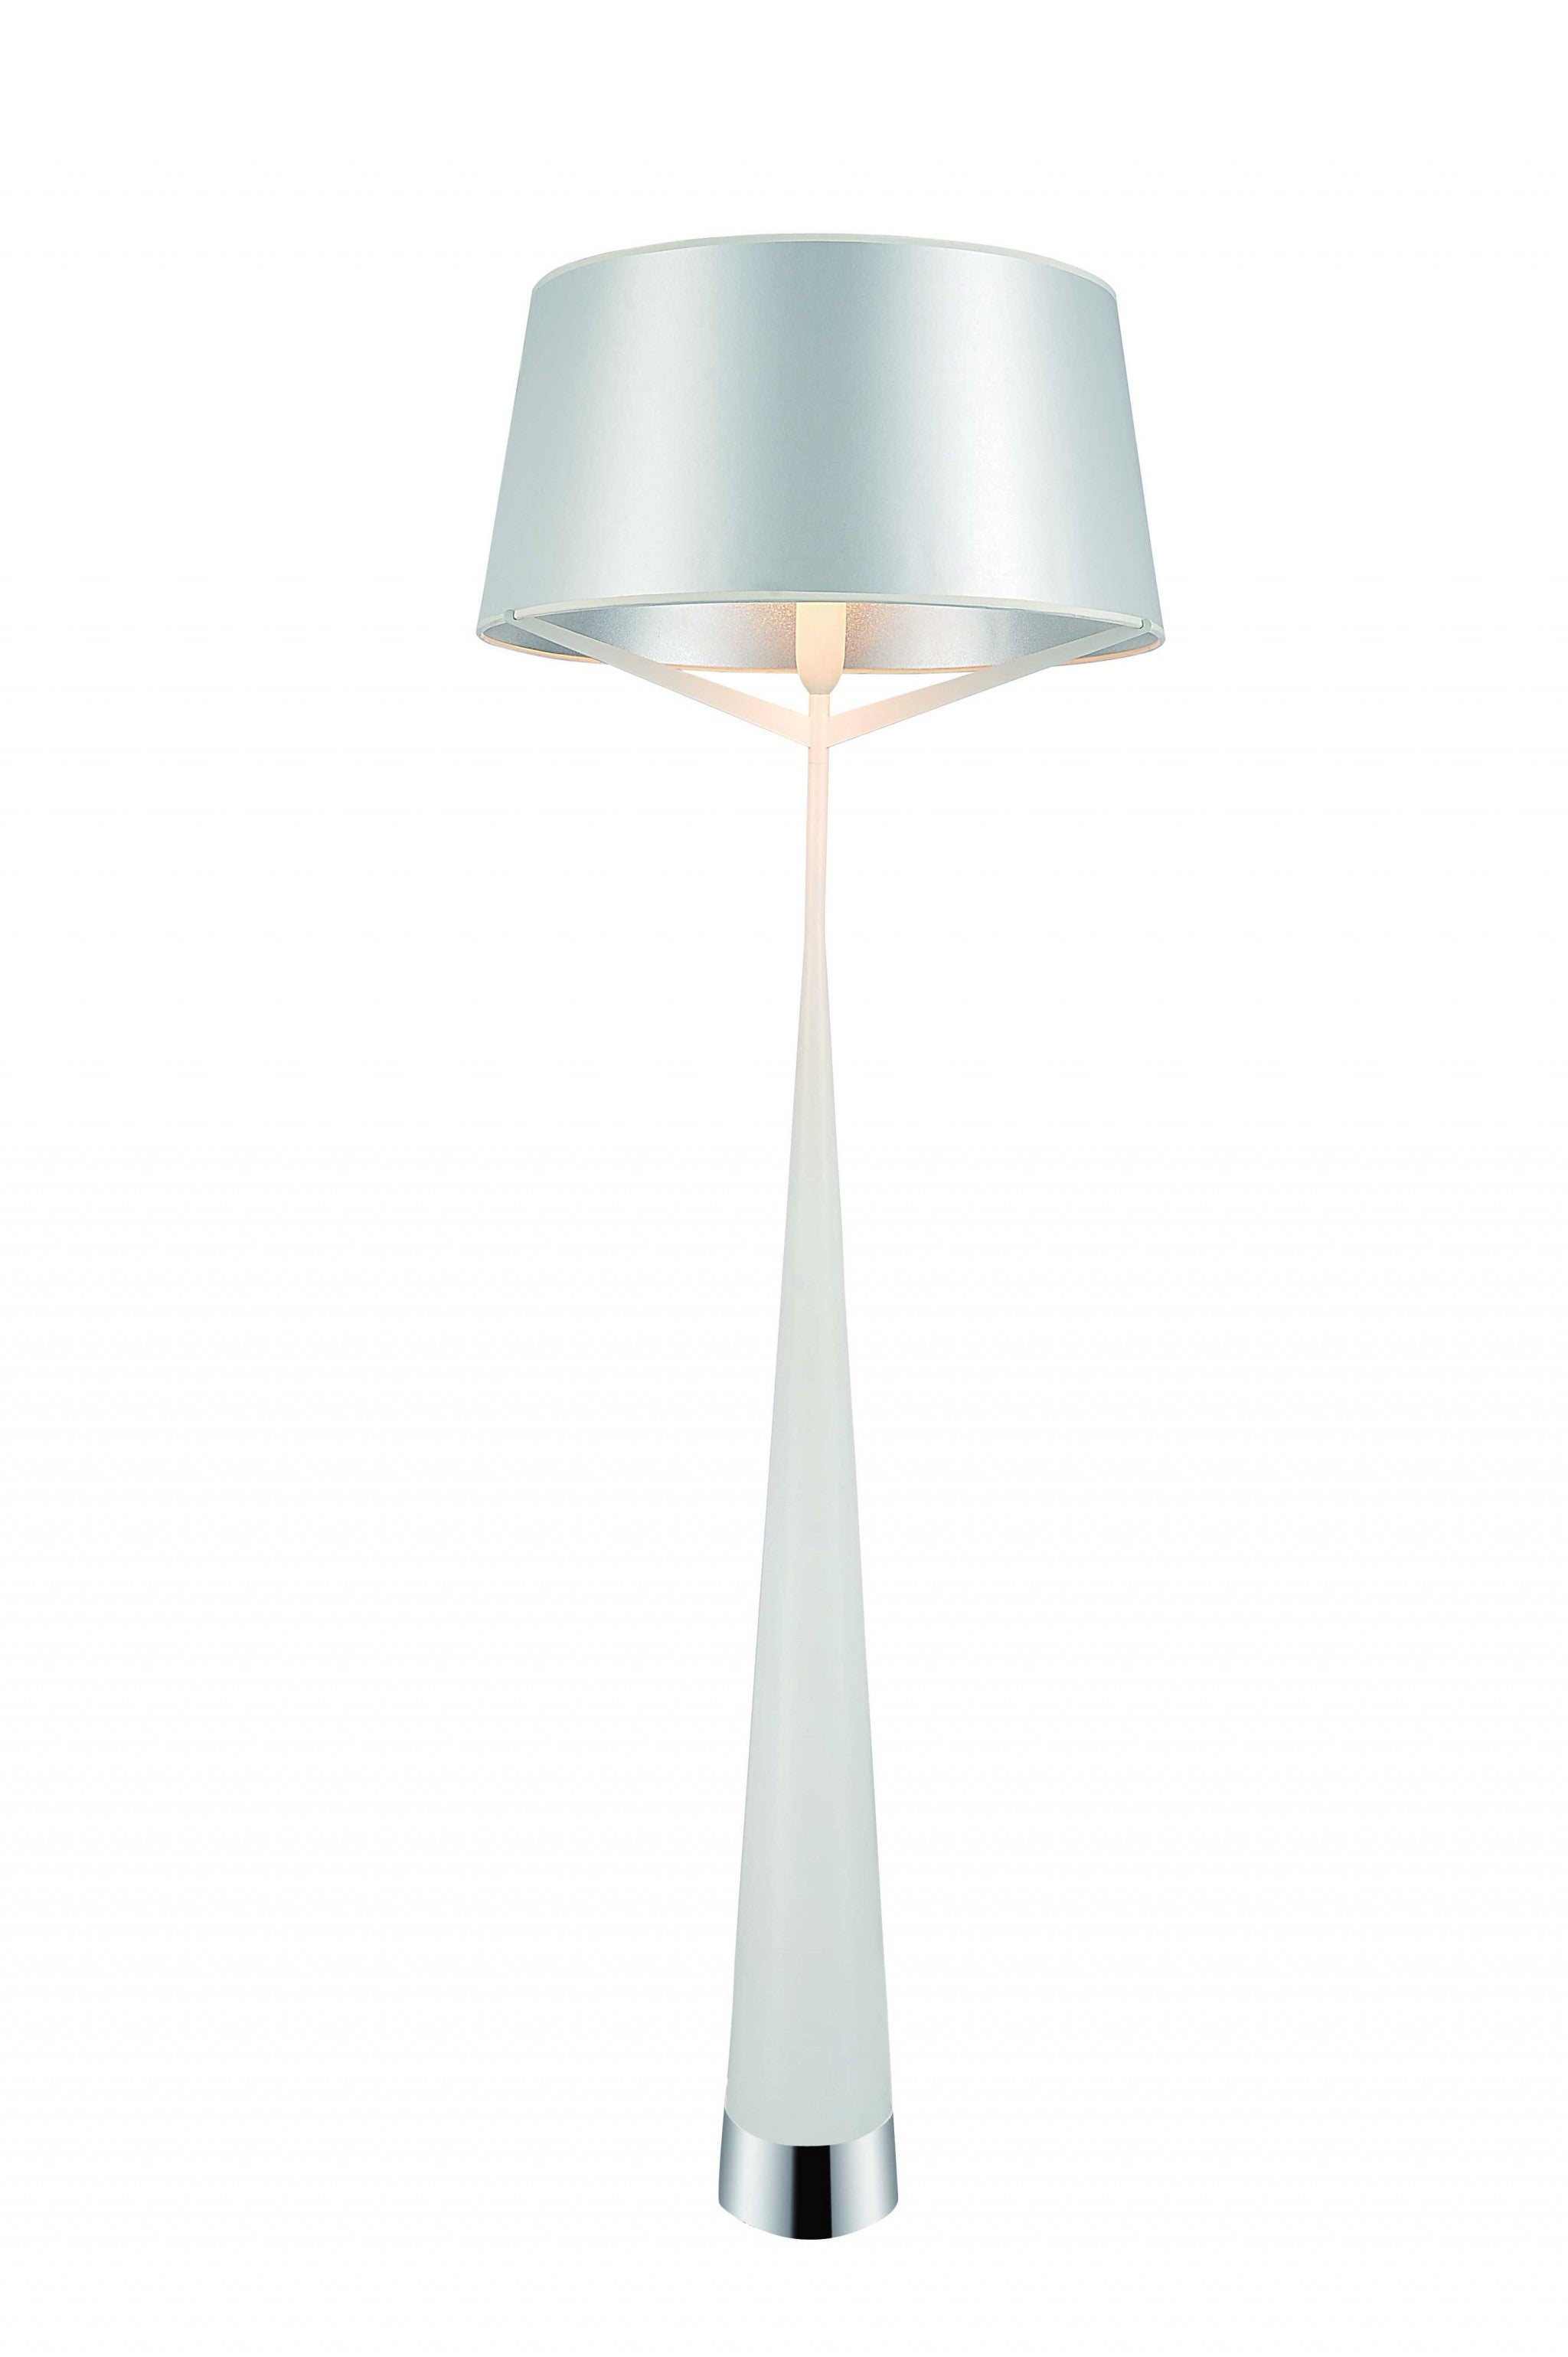 "24"" X 24"" X 67"" White Carbon Floor Lamp"